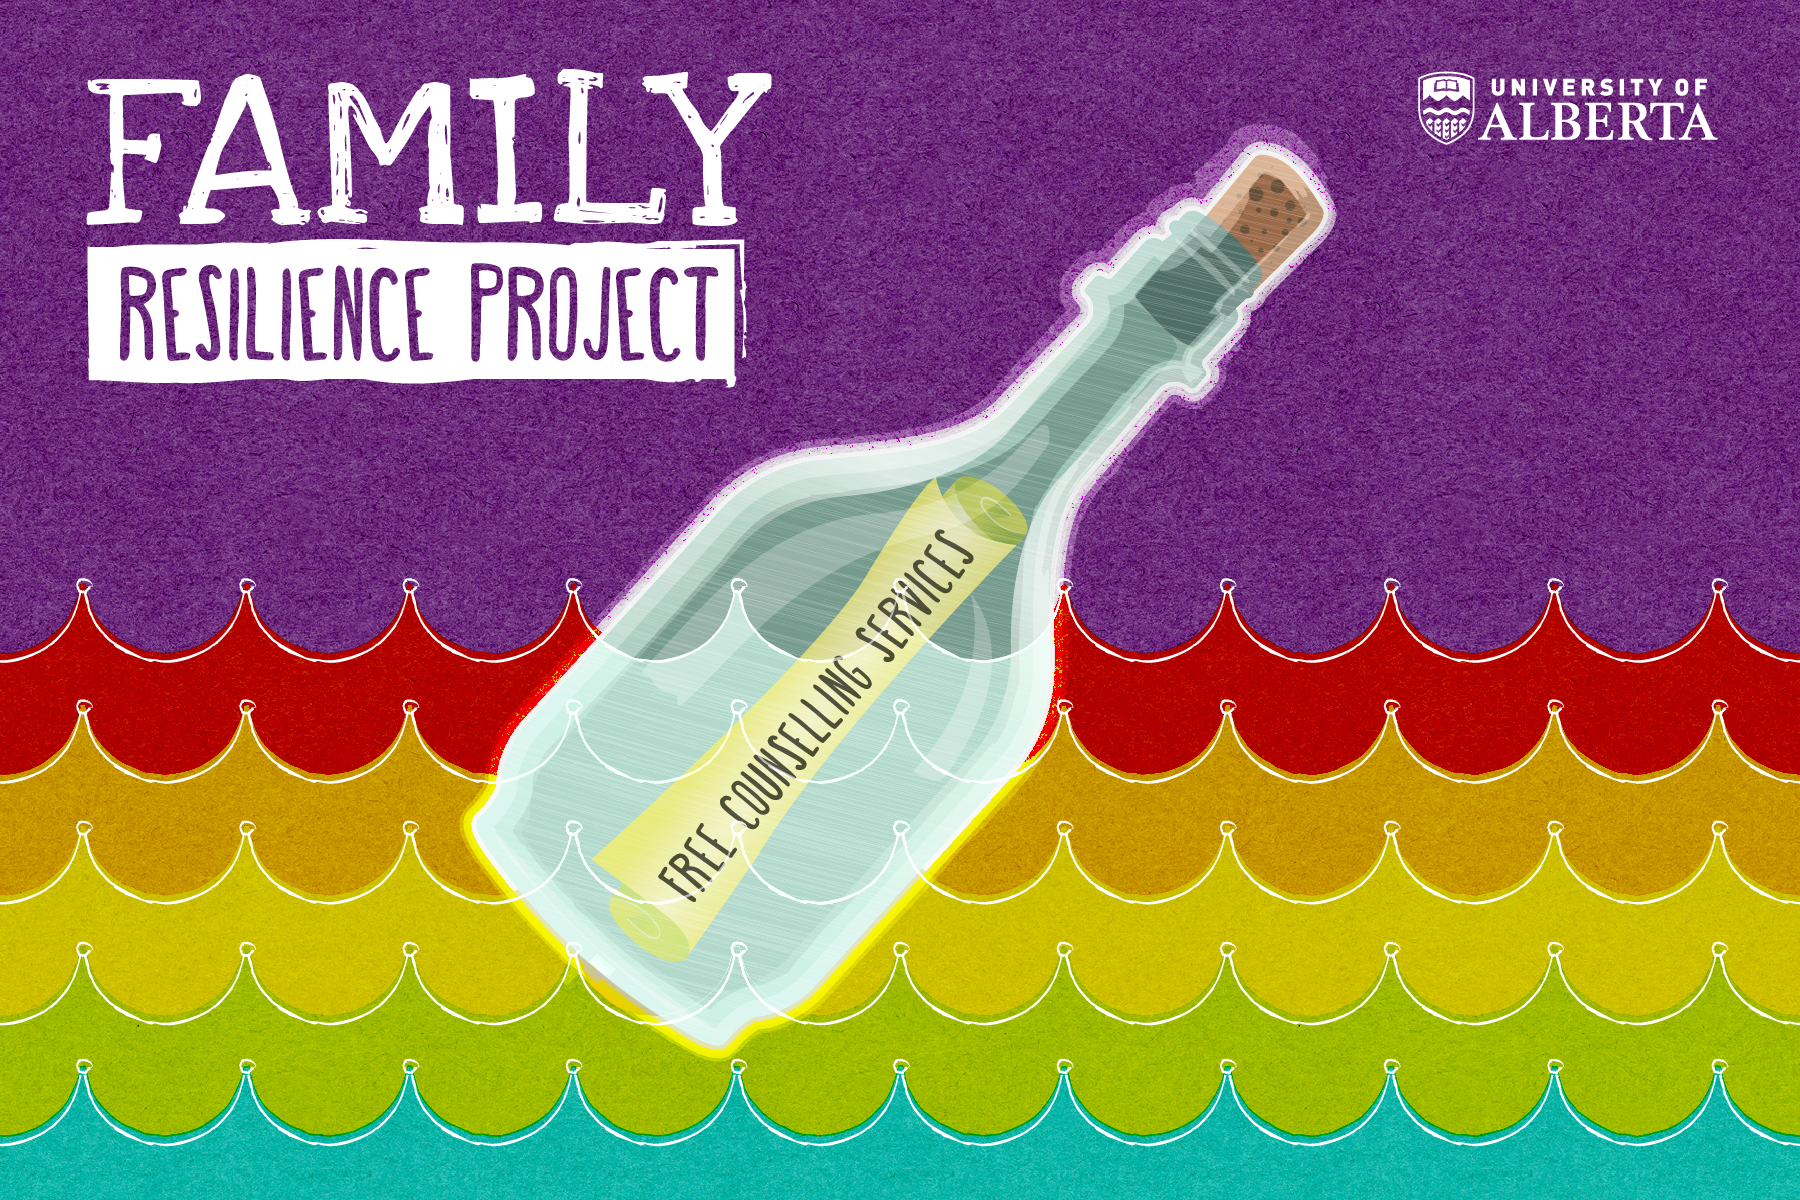 FamilyResilienceProject_Postcard_6x4_16-09-30-01.png